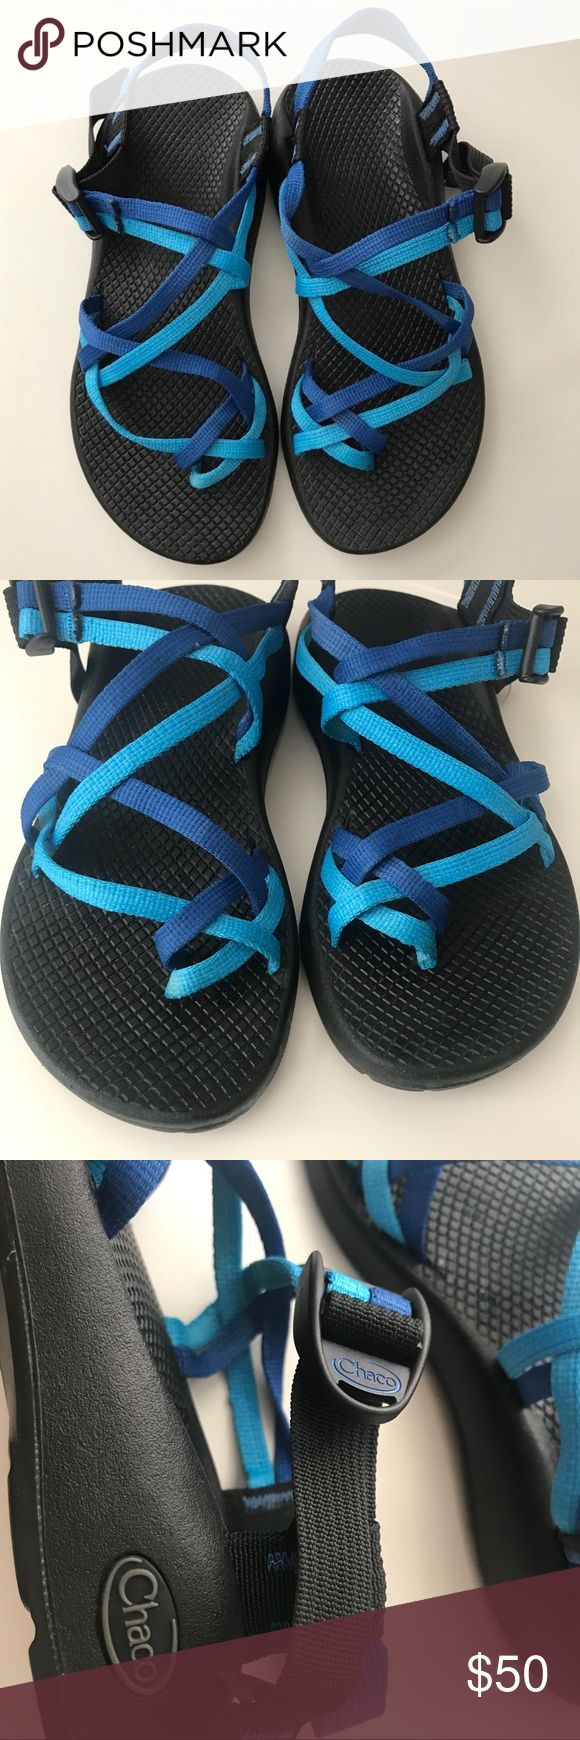 Chaco Blue Strappy Sandals Chaco Blue Strappy Sandals - Size 7 - Excellent condition. Chaco Shoes Sandals